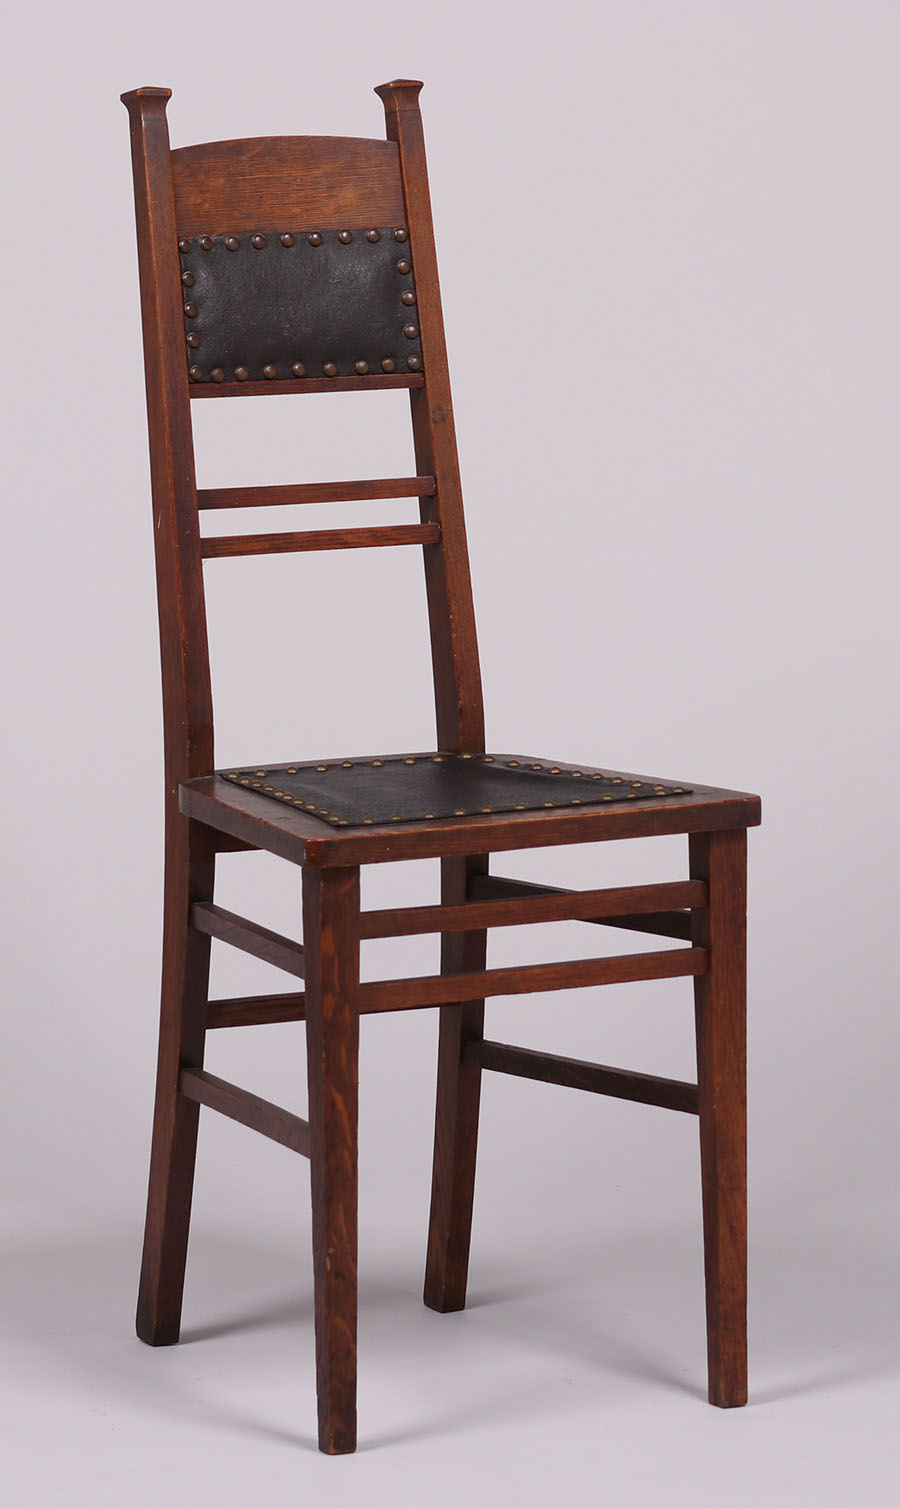 Arts & Crafts Narrow Desk Chair c37  California Historical Design